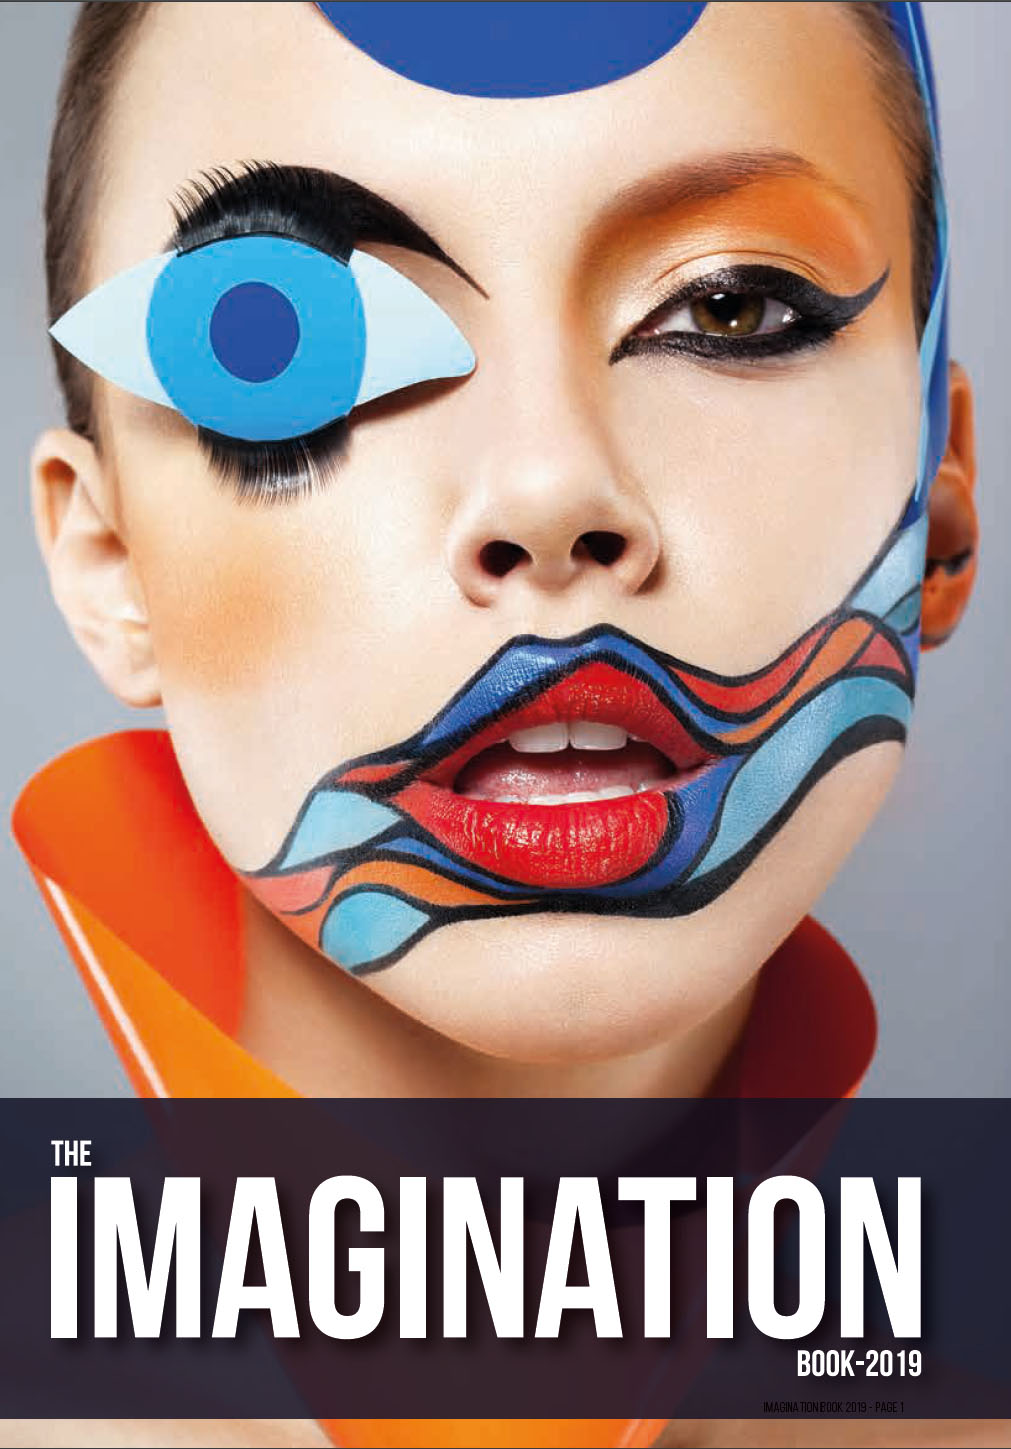 best college for fashion designing - Imagination Book 2019 Cover - Imagination Books